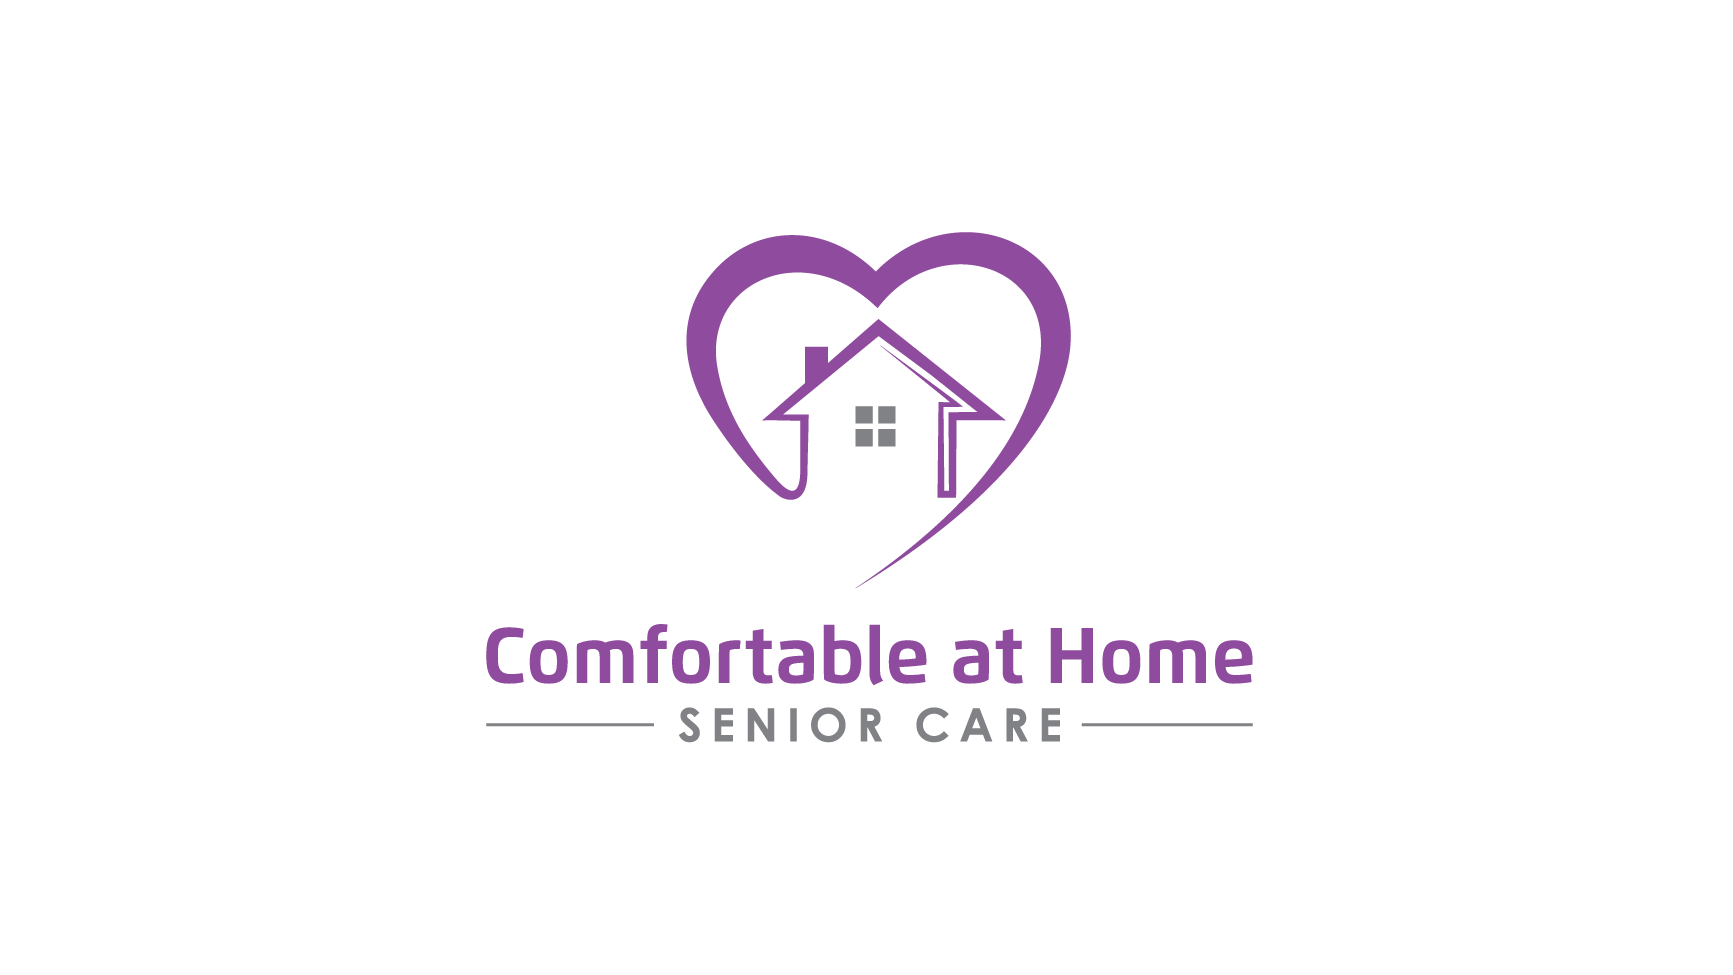 Comfortable at Home Senior Care Logo